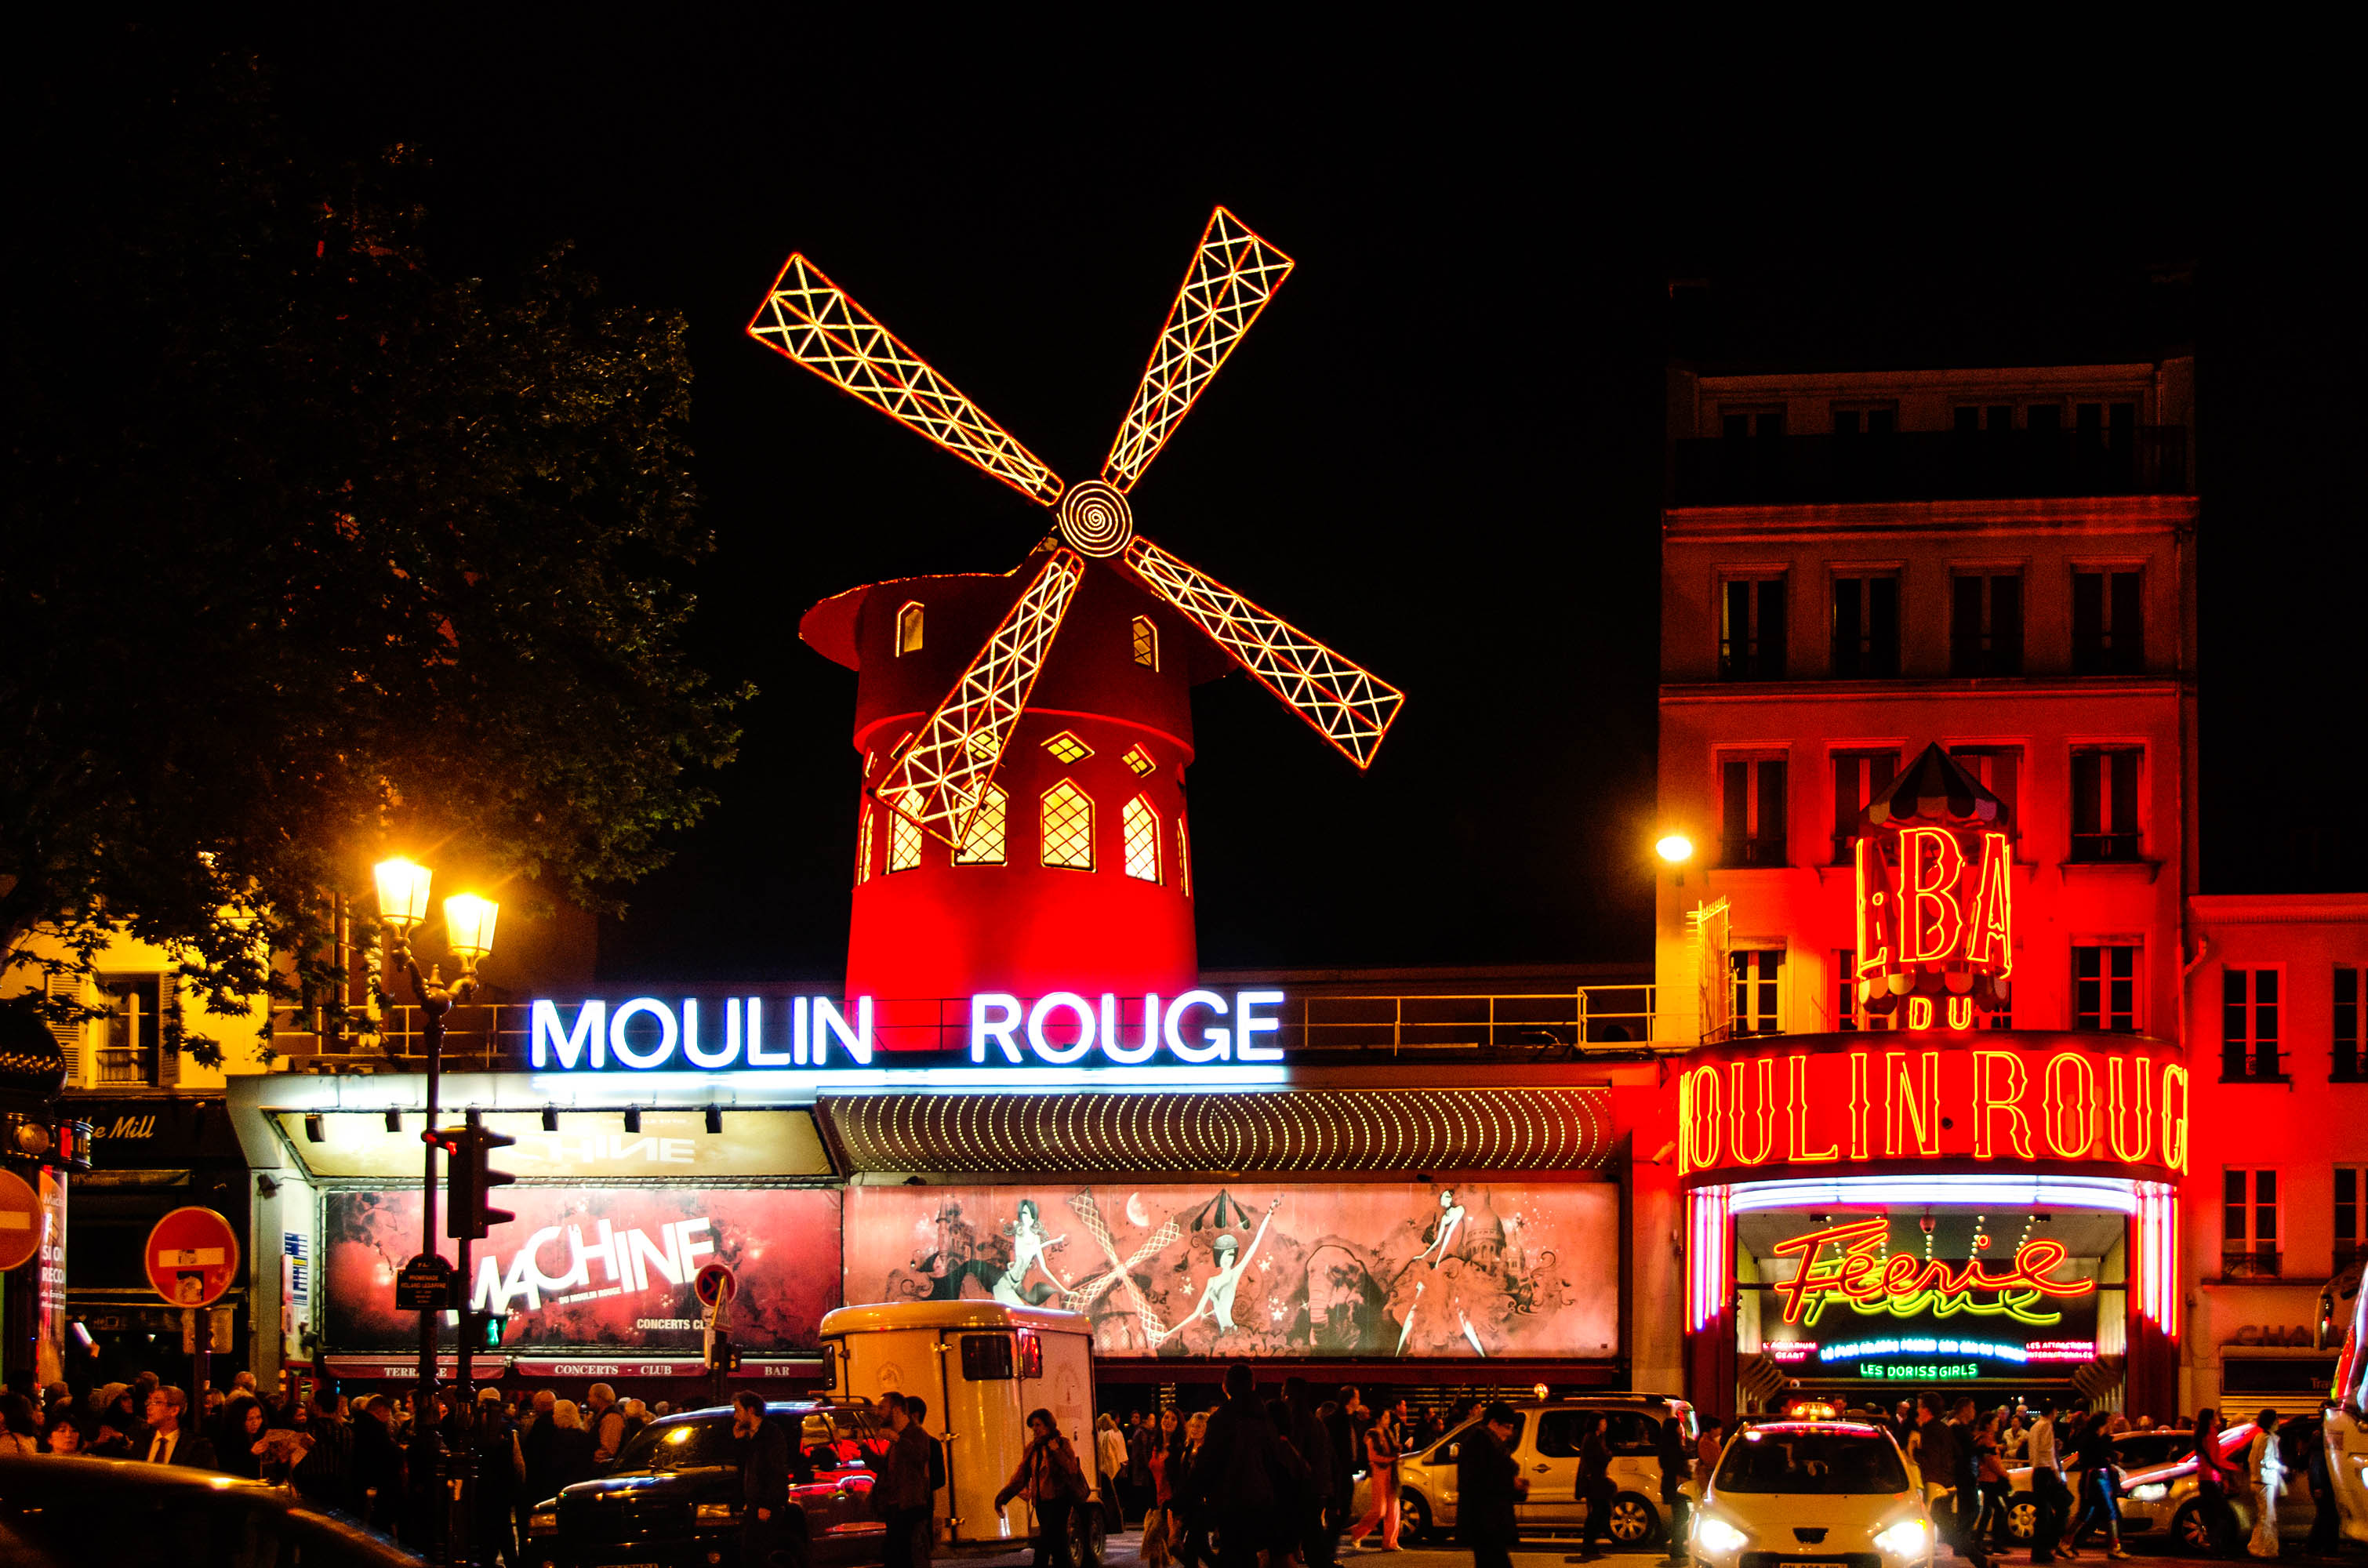 PARIS - APRIL 30: The Moulin Rouge by night, on April 30, 2014 in Paris, France. Moulin Rouge is a famous cabaret built in 1889, locating in the Paris red-light district of Pigalle